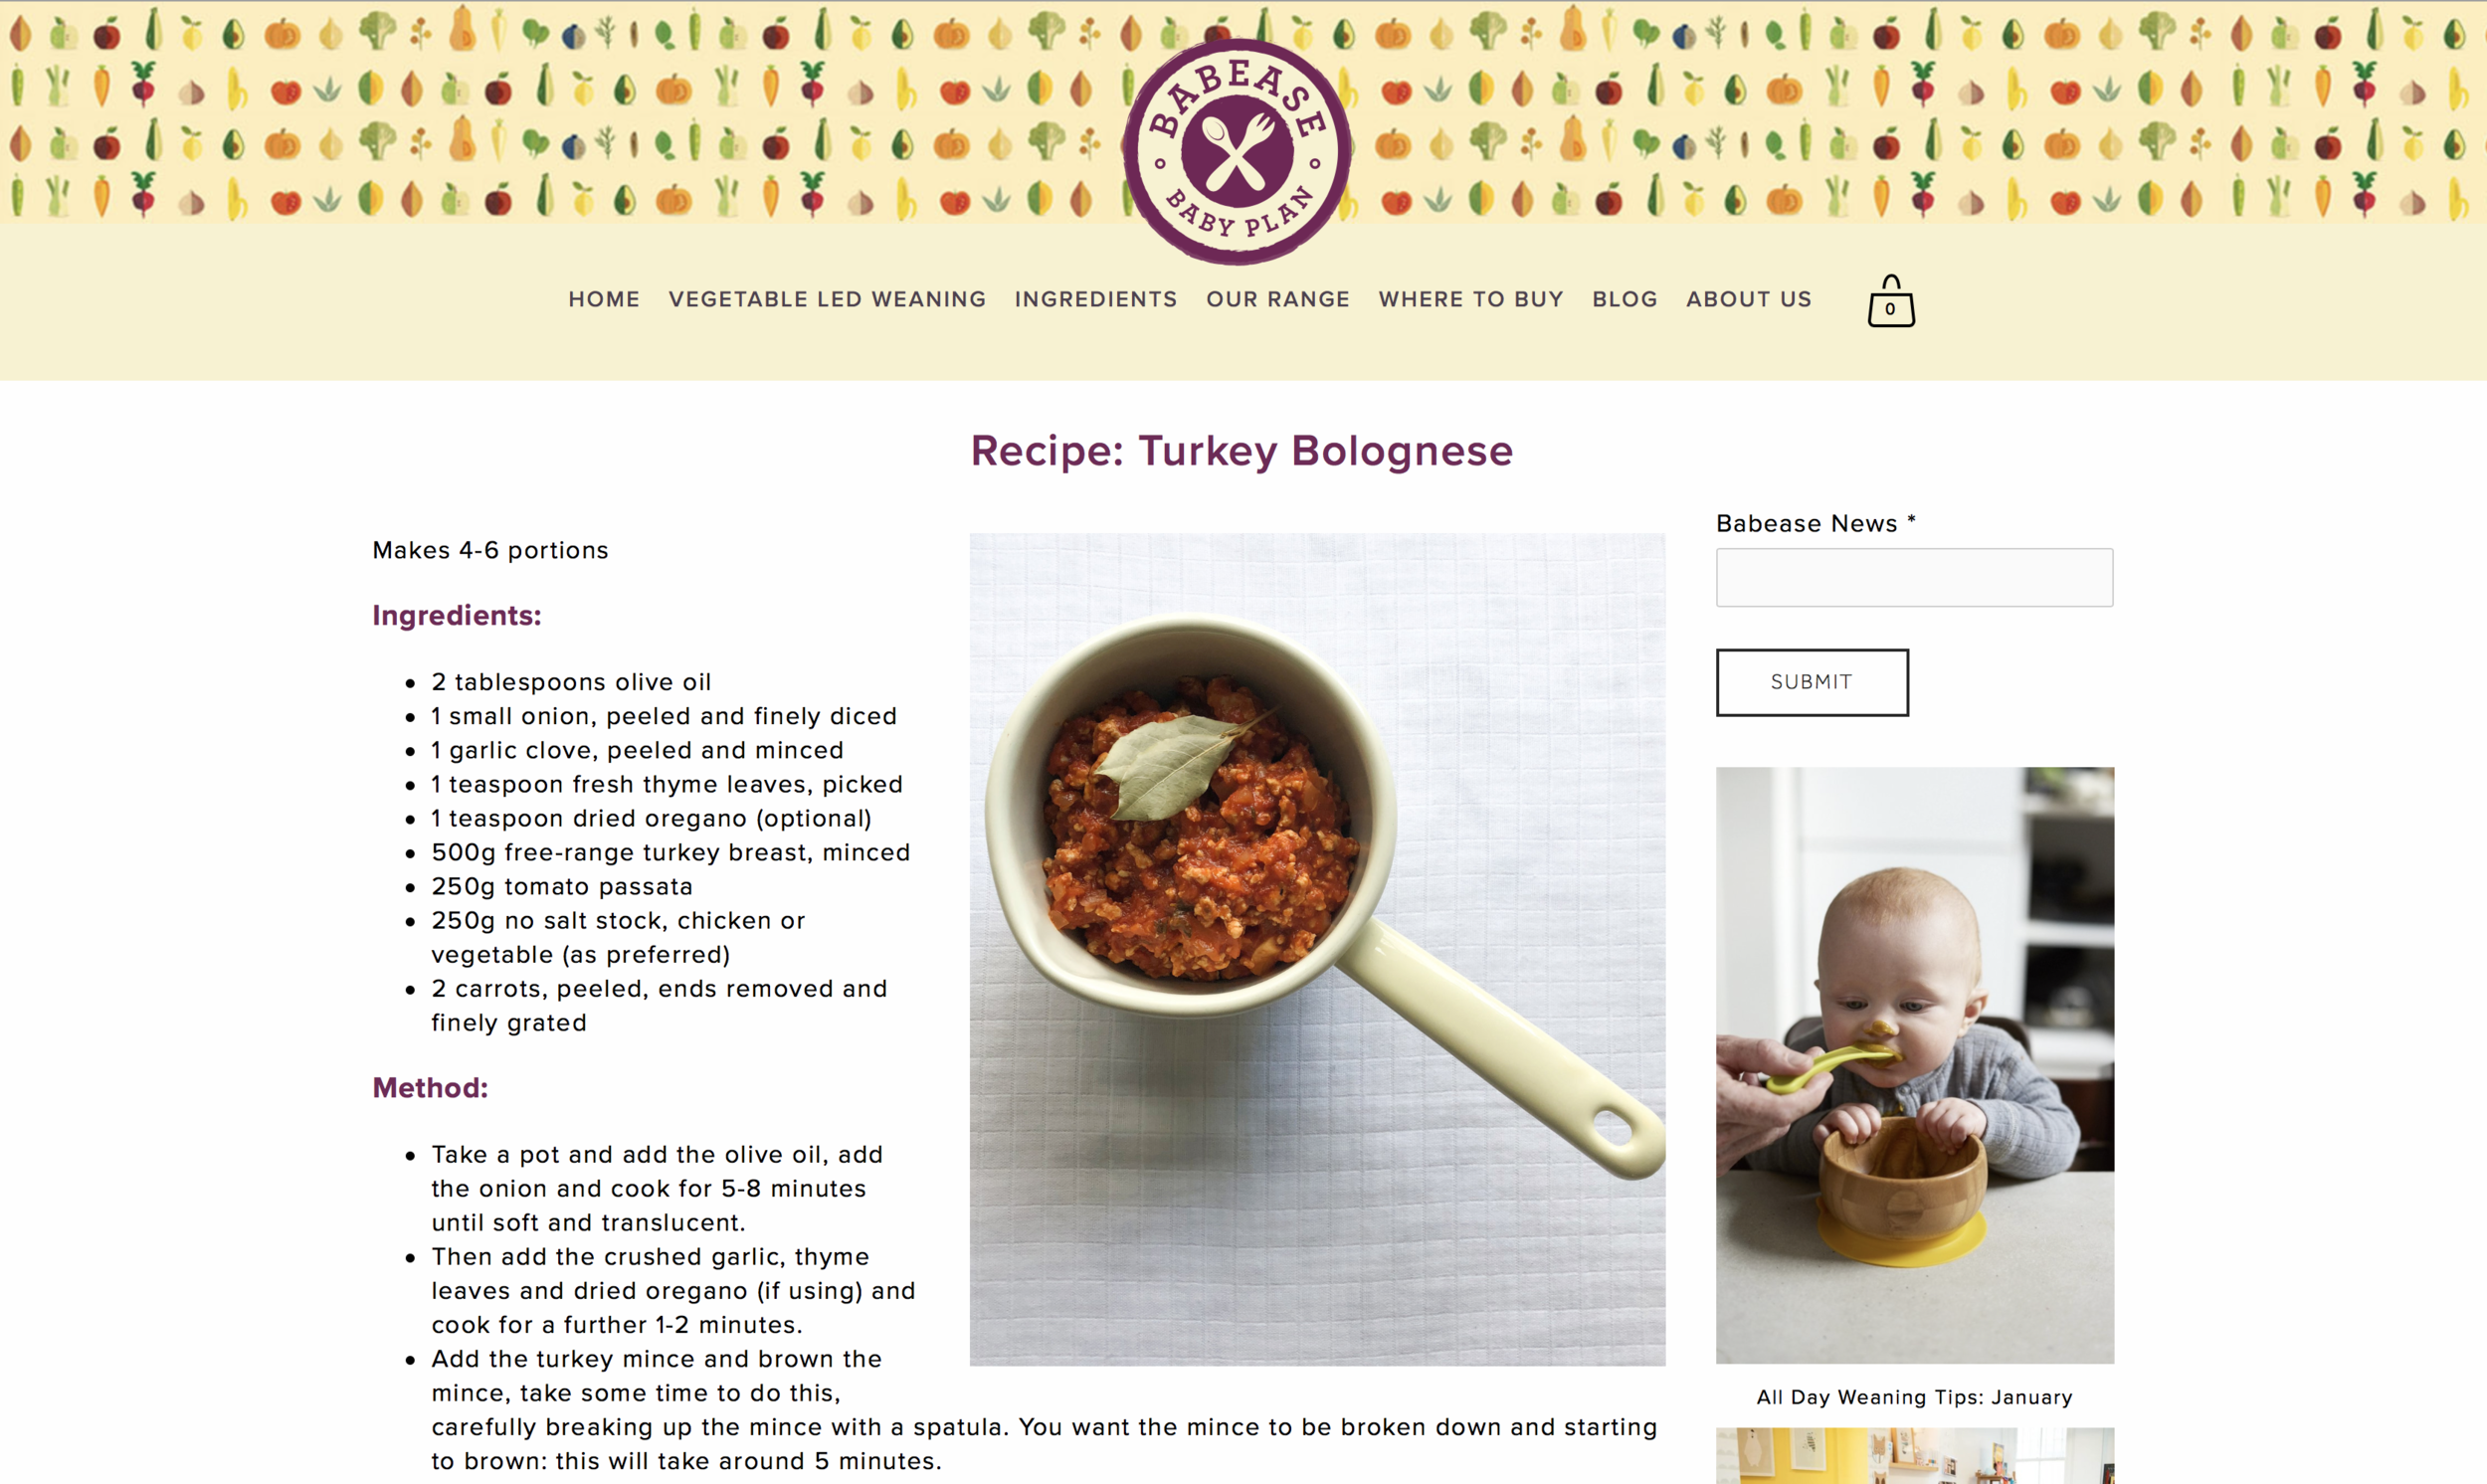 Babease Recipe Share 27.12.18 1 of 2 .png